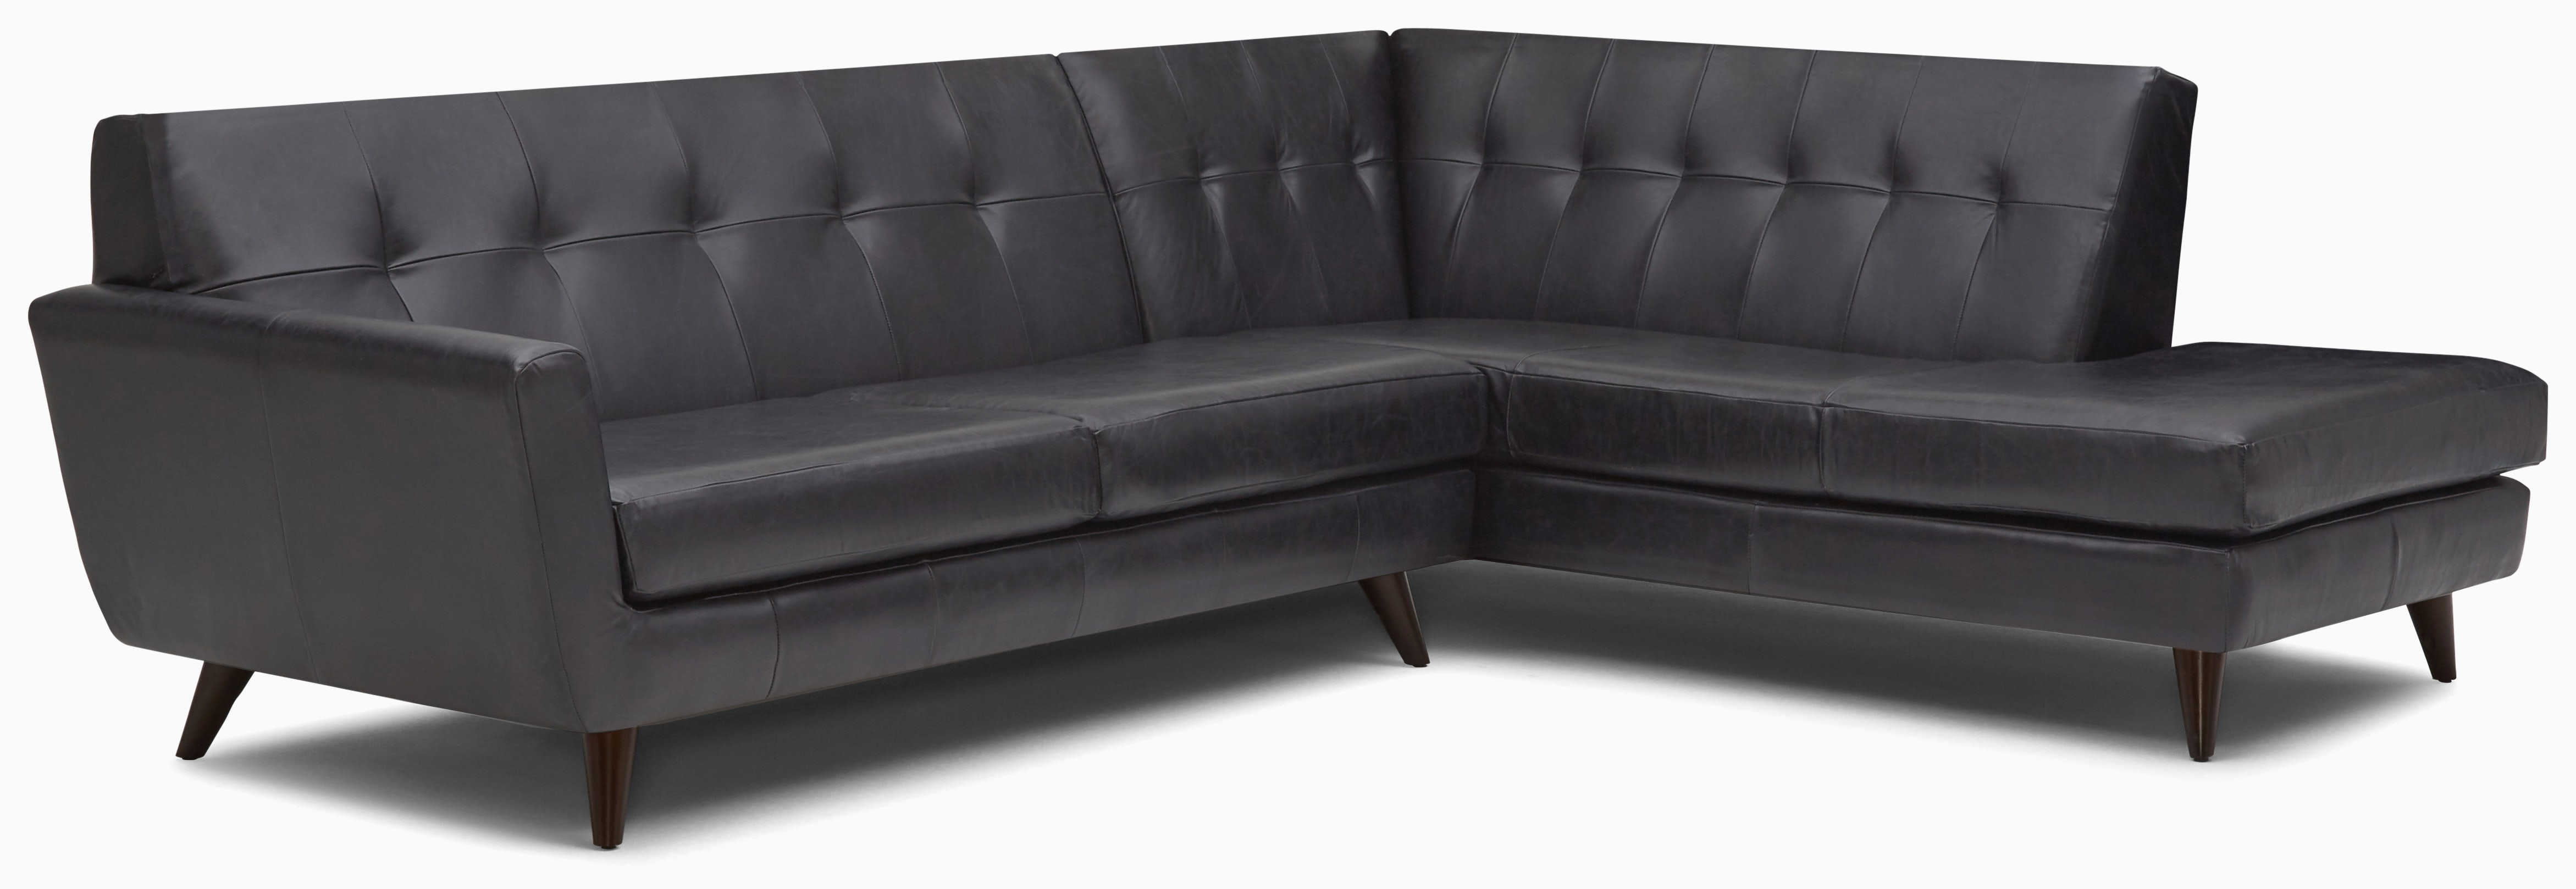 hughes leather sectional with bumper %282 piece%29 santiago steel